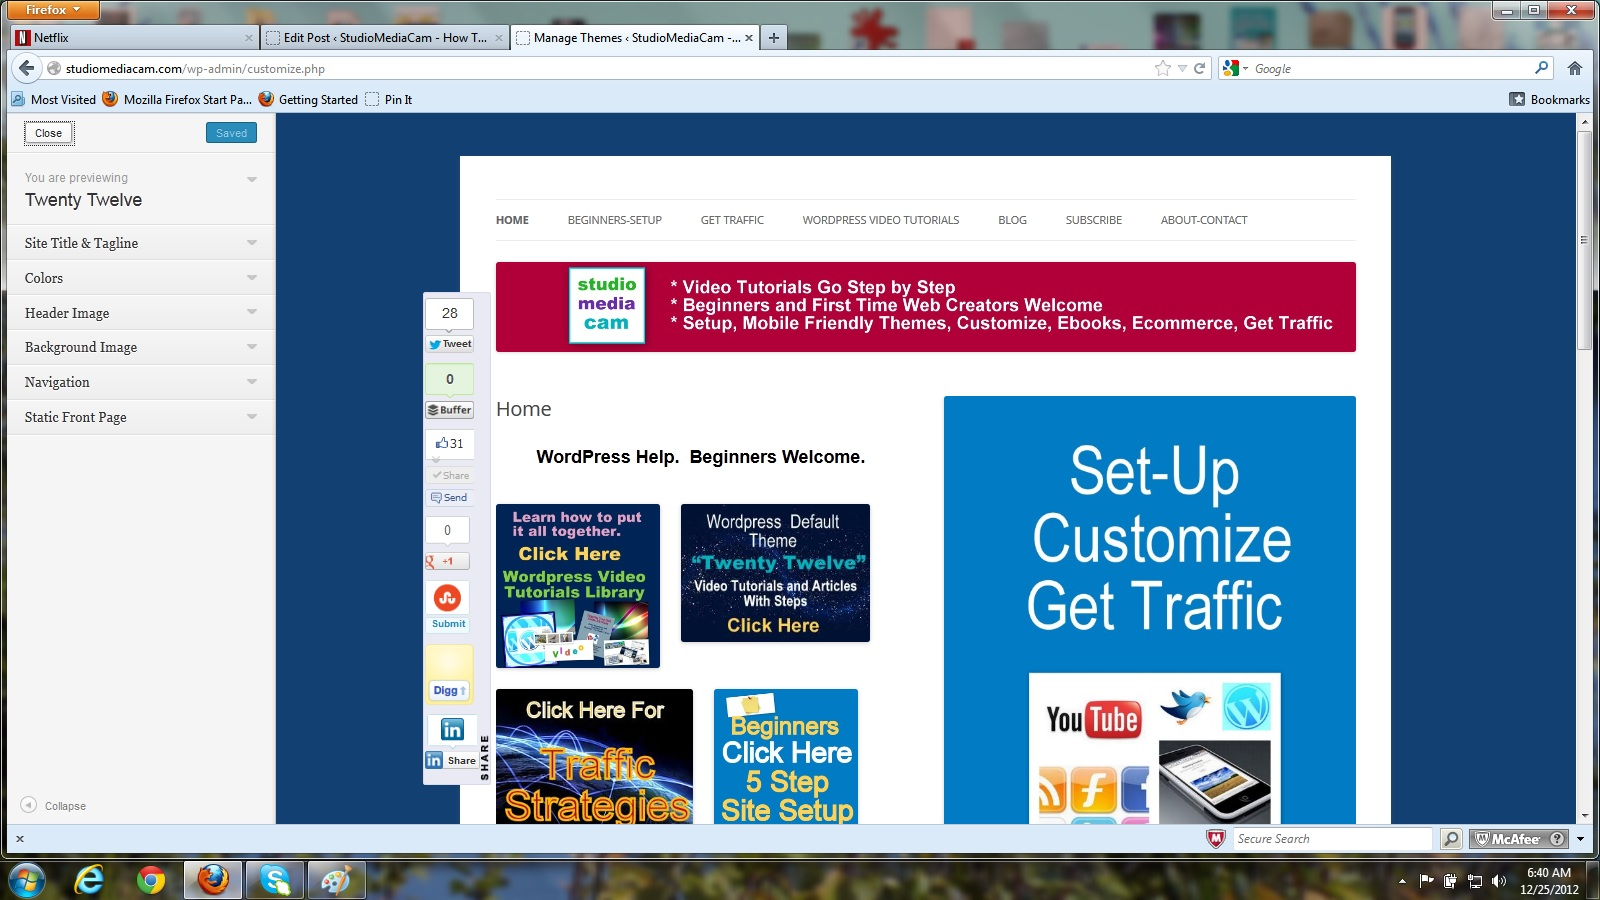 How to add social media to wordpress free tutorials customize tab opens to selections screencast baditri Choice Image